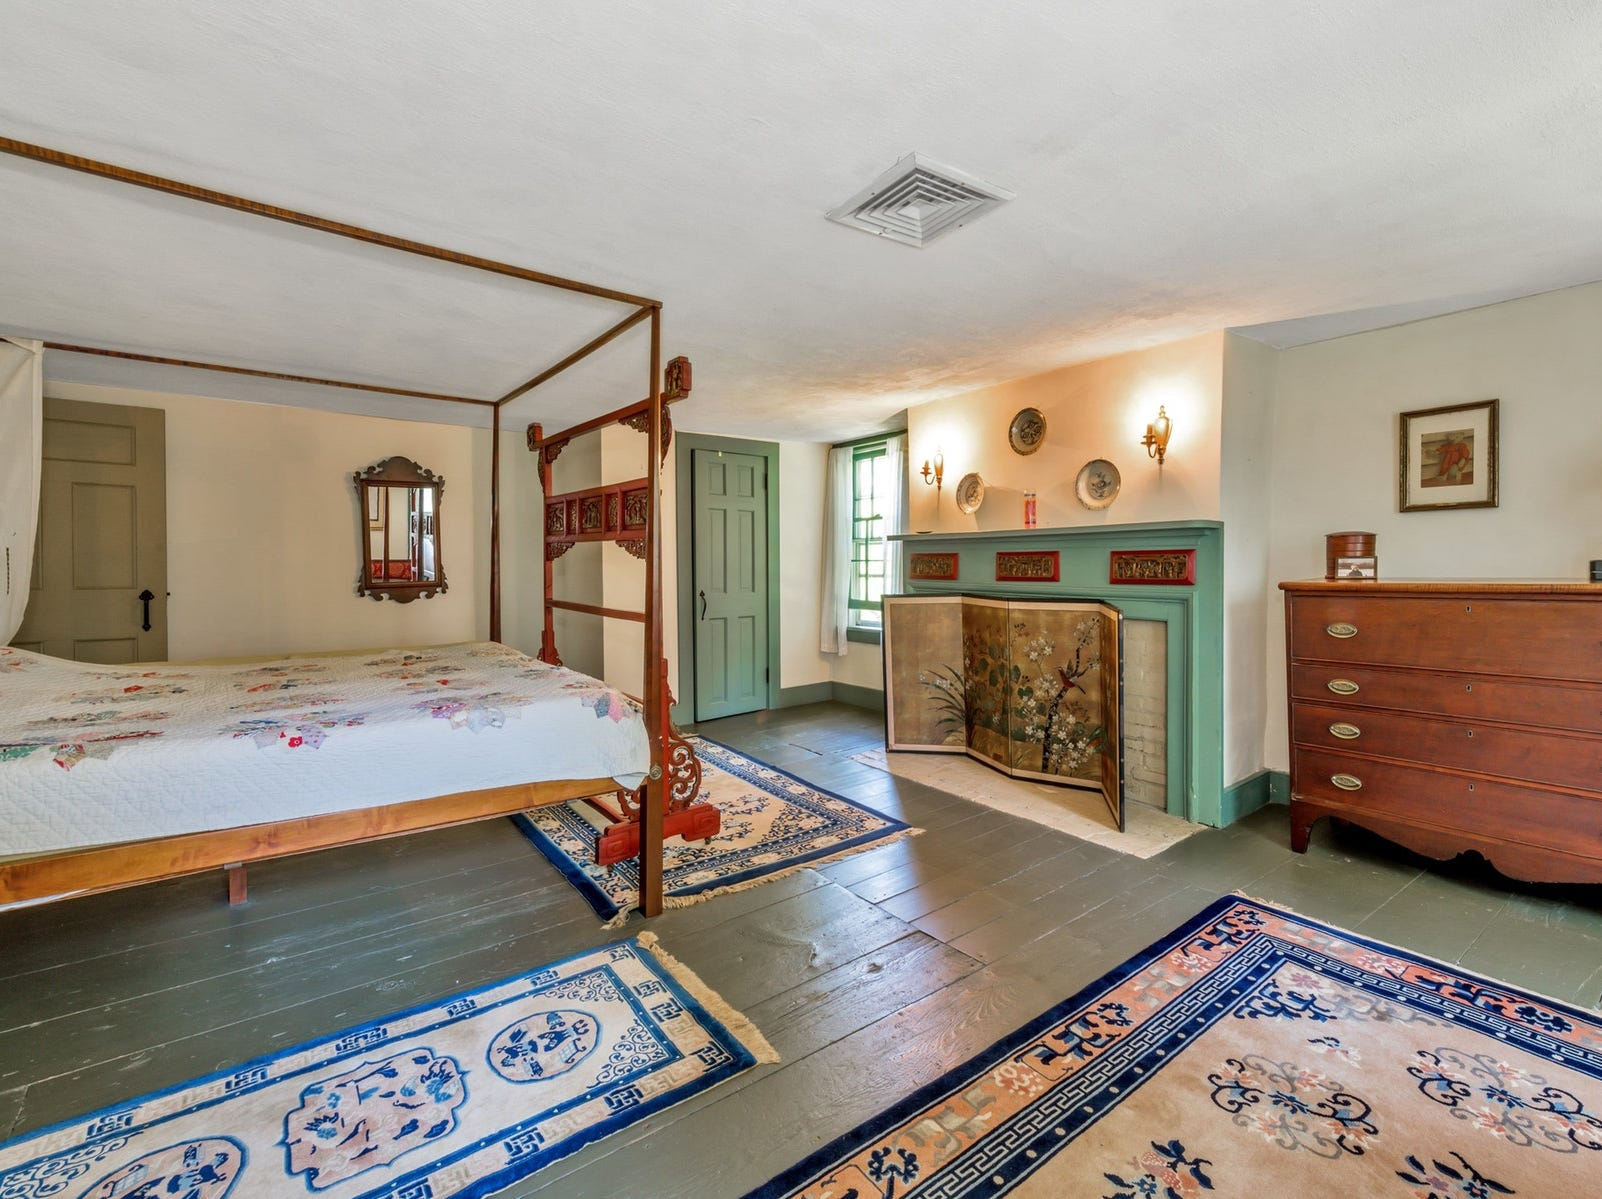 There are many original details including wide-plan wood floors. The home has an original mantelpiece, brought over from England.